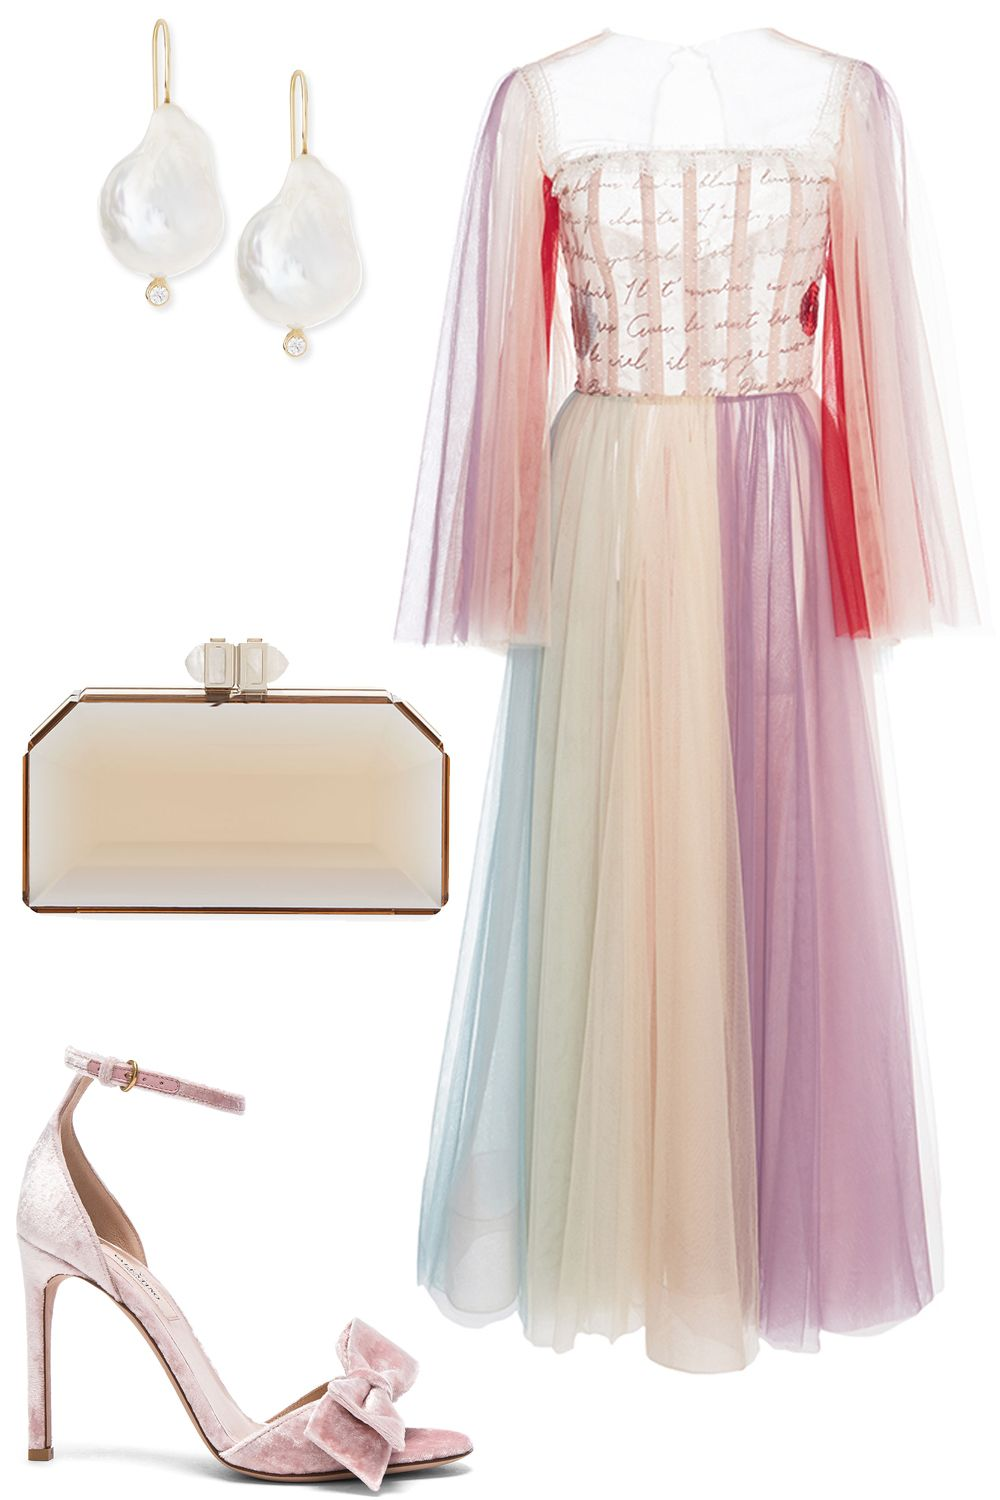 dress for fall wedding. 12 fall wedding guest dresses for 2017 - what to wear a dress